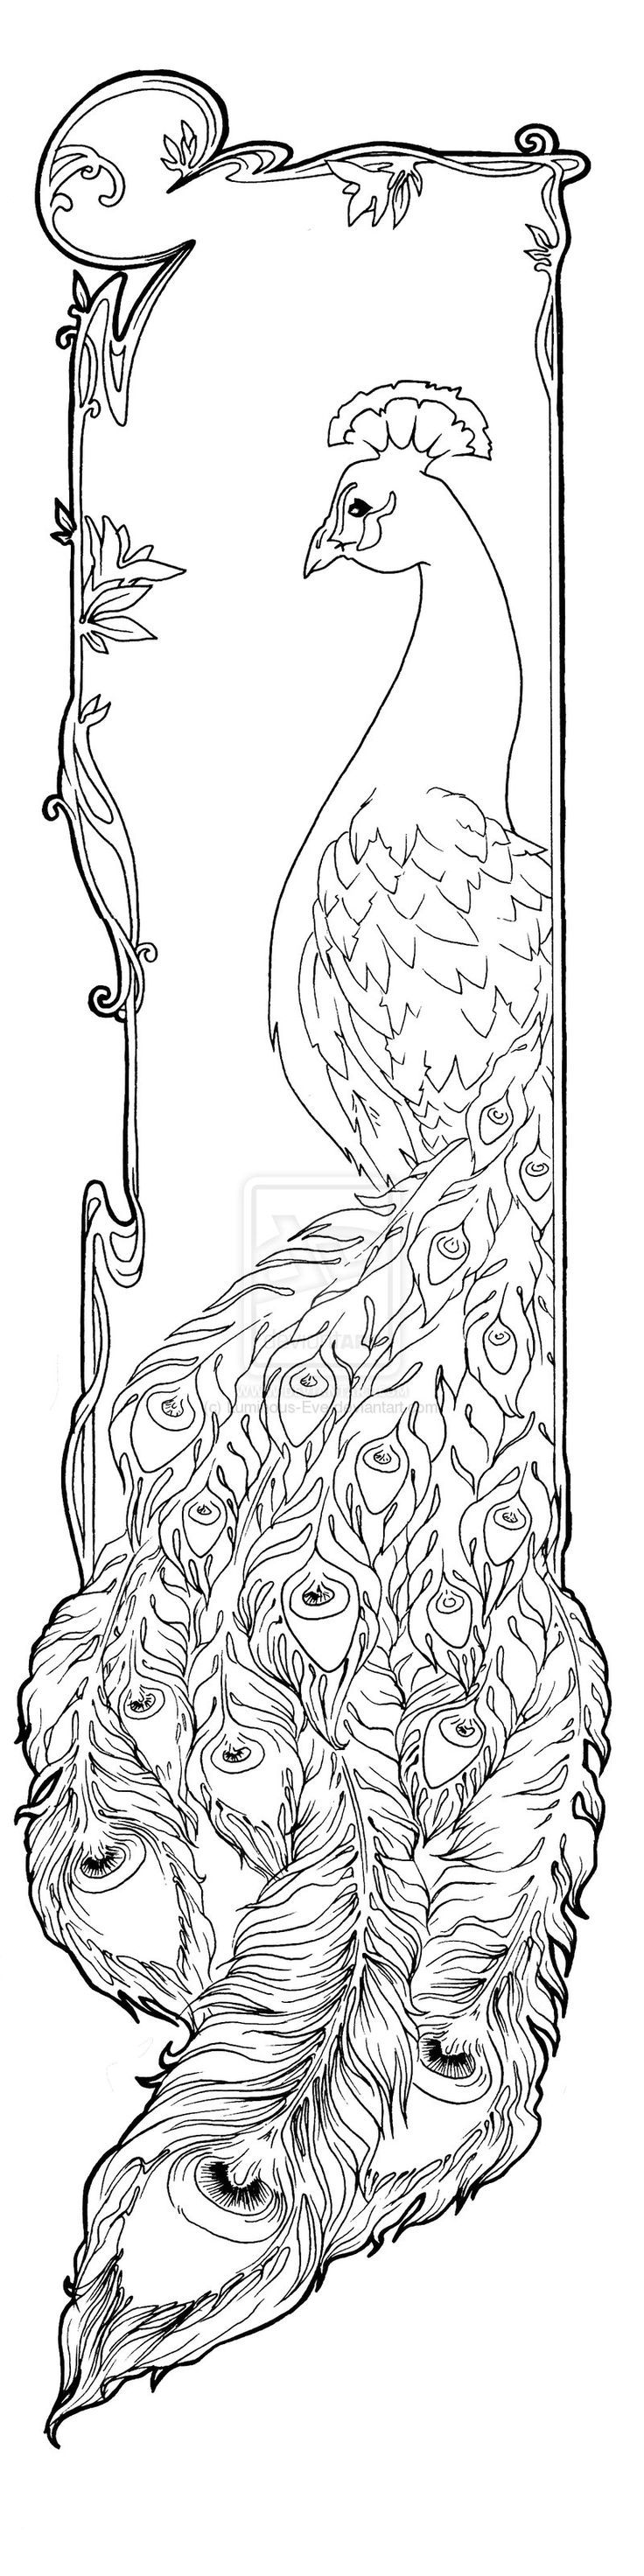 170 best Malvorlagen images on Pinterest | Coloring books ...